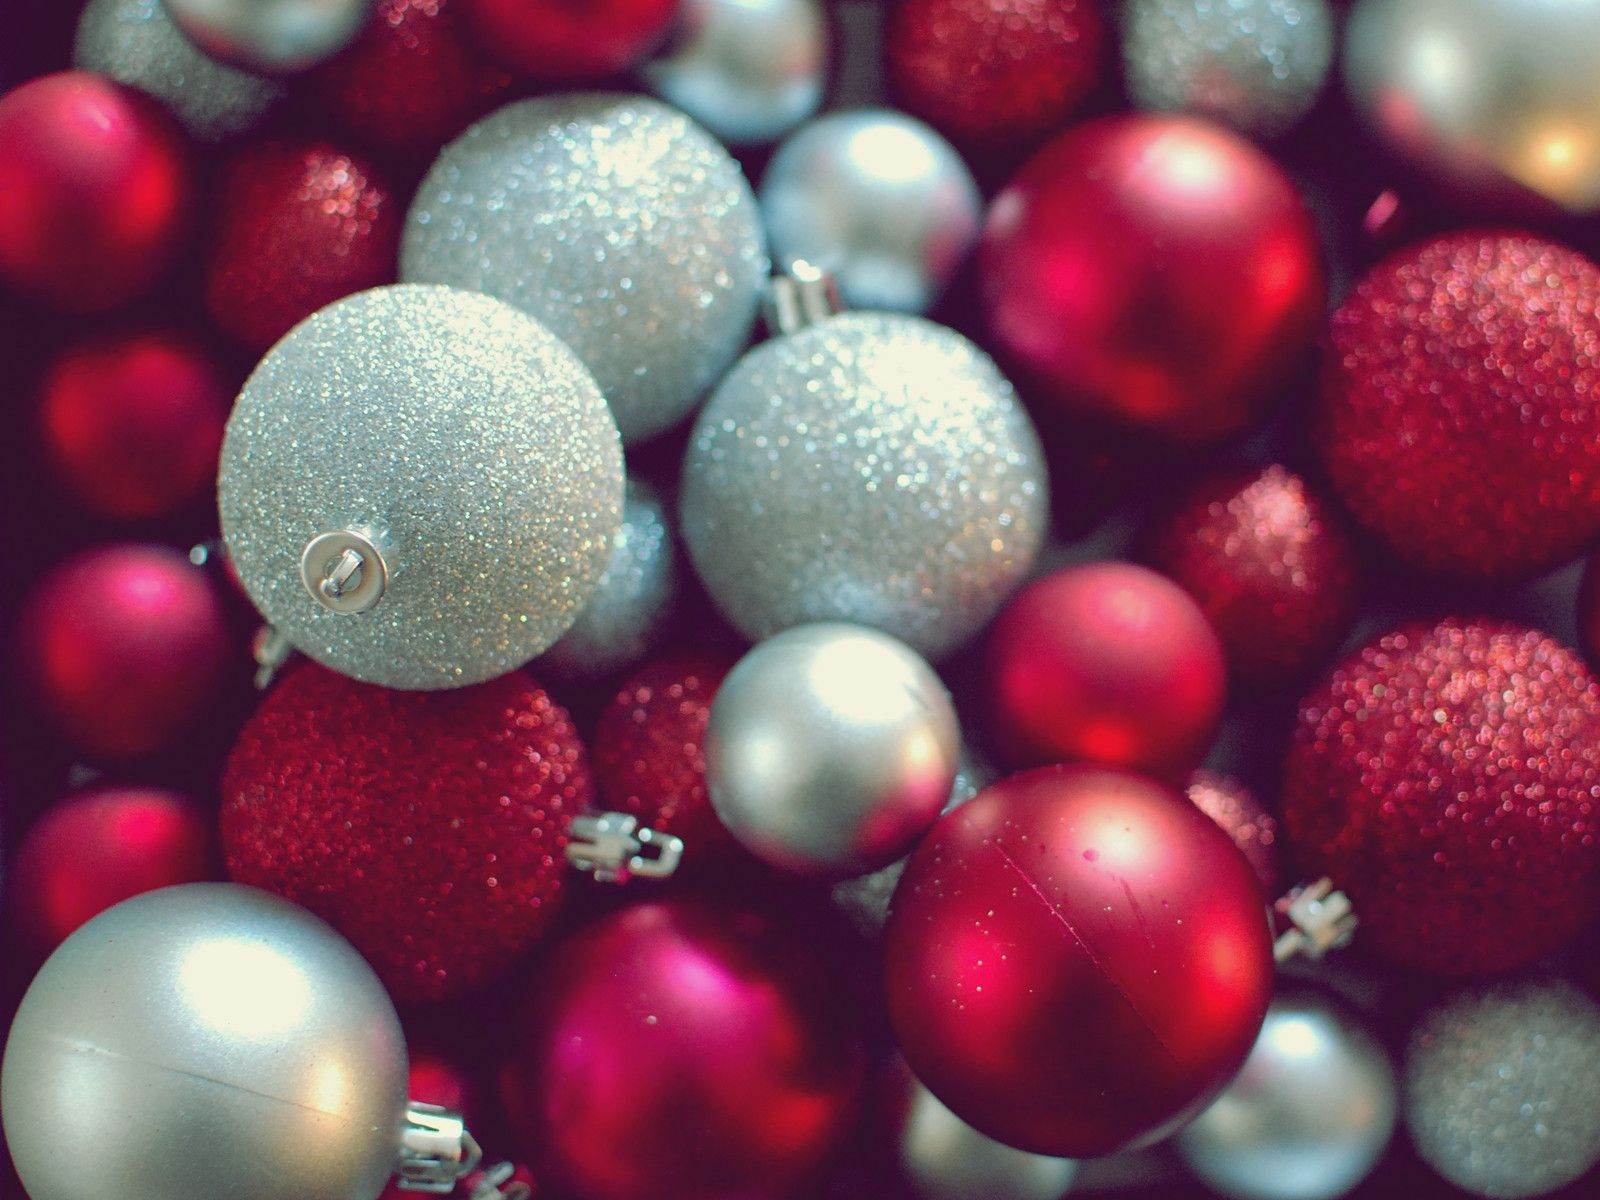 Christmas Ornament Wallpaper